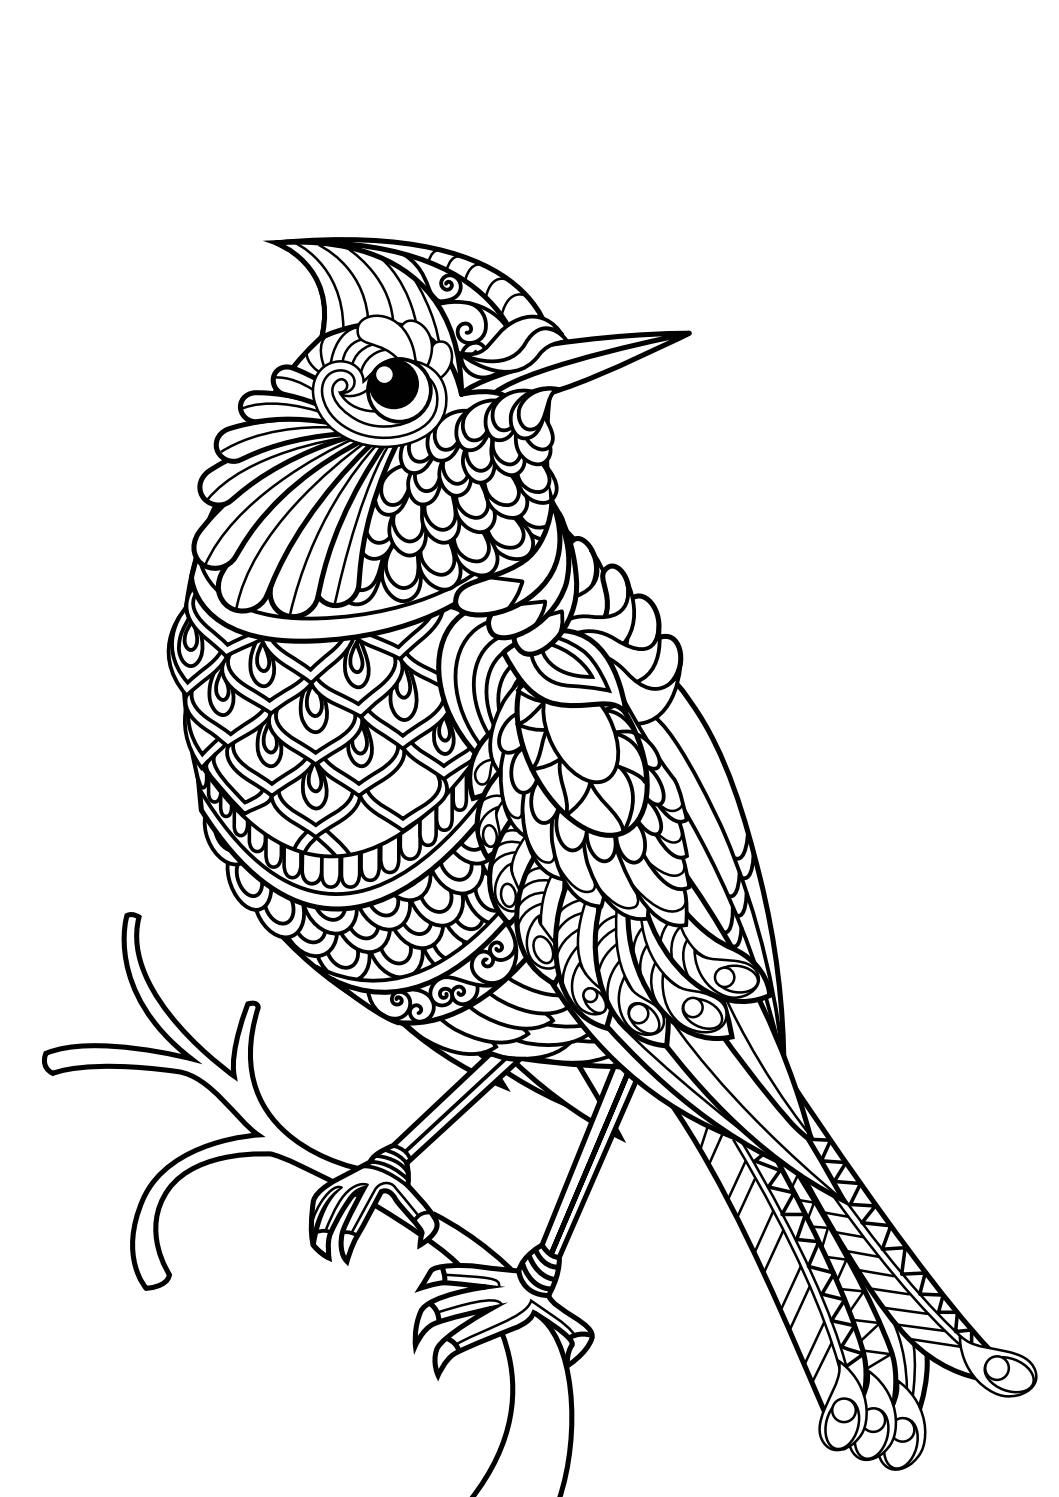 Animal coloring pages pdf Bird coloring pages, Mandala